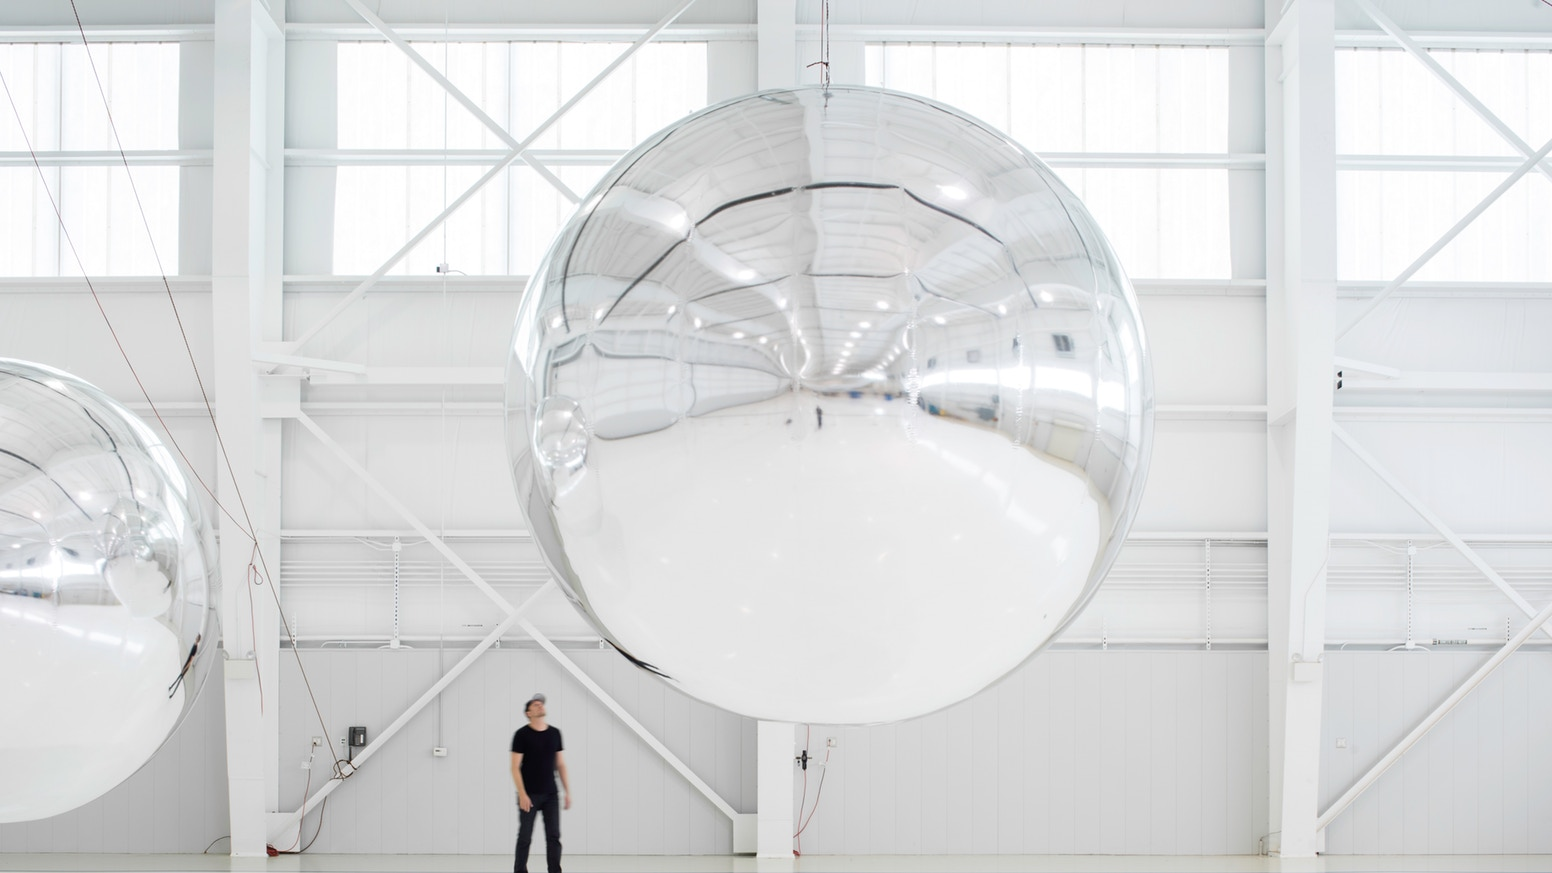 Trevor Paglen,  Orbital Reflector  (early prototype), 2017-2019. Image courtesy Paglen, Nevada Museum of Art.